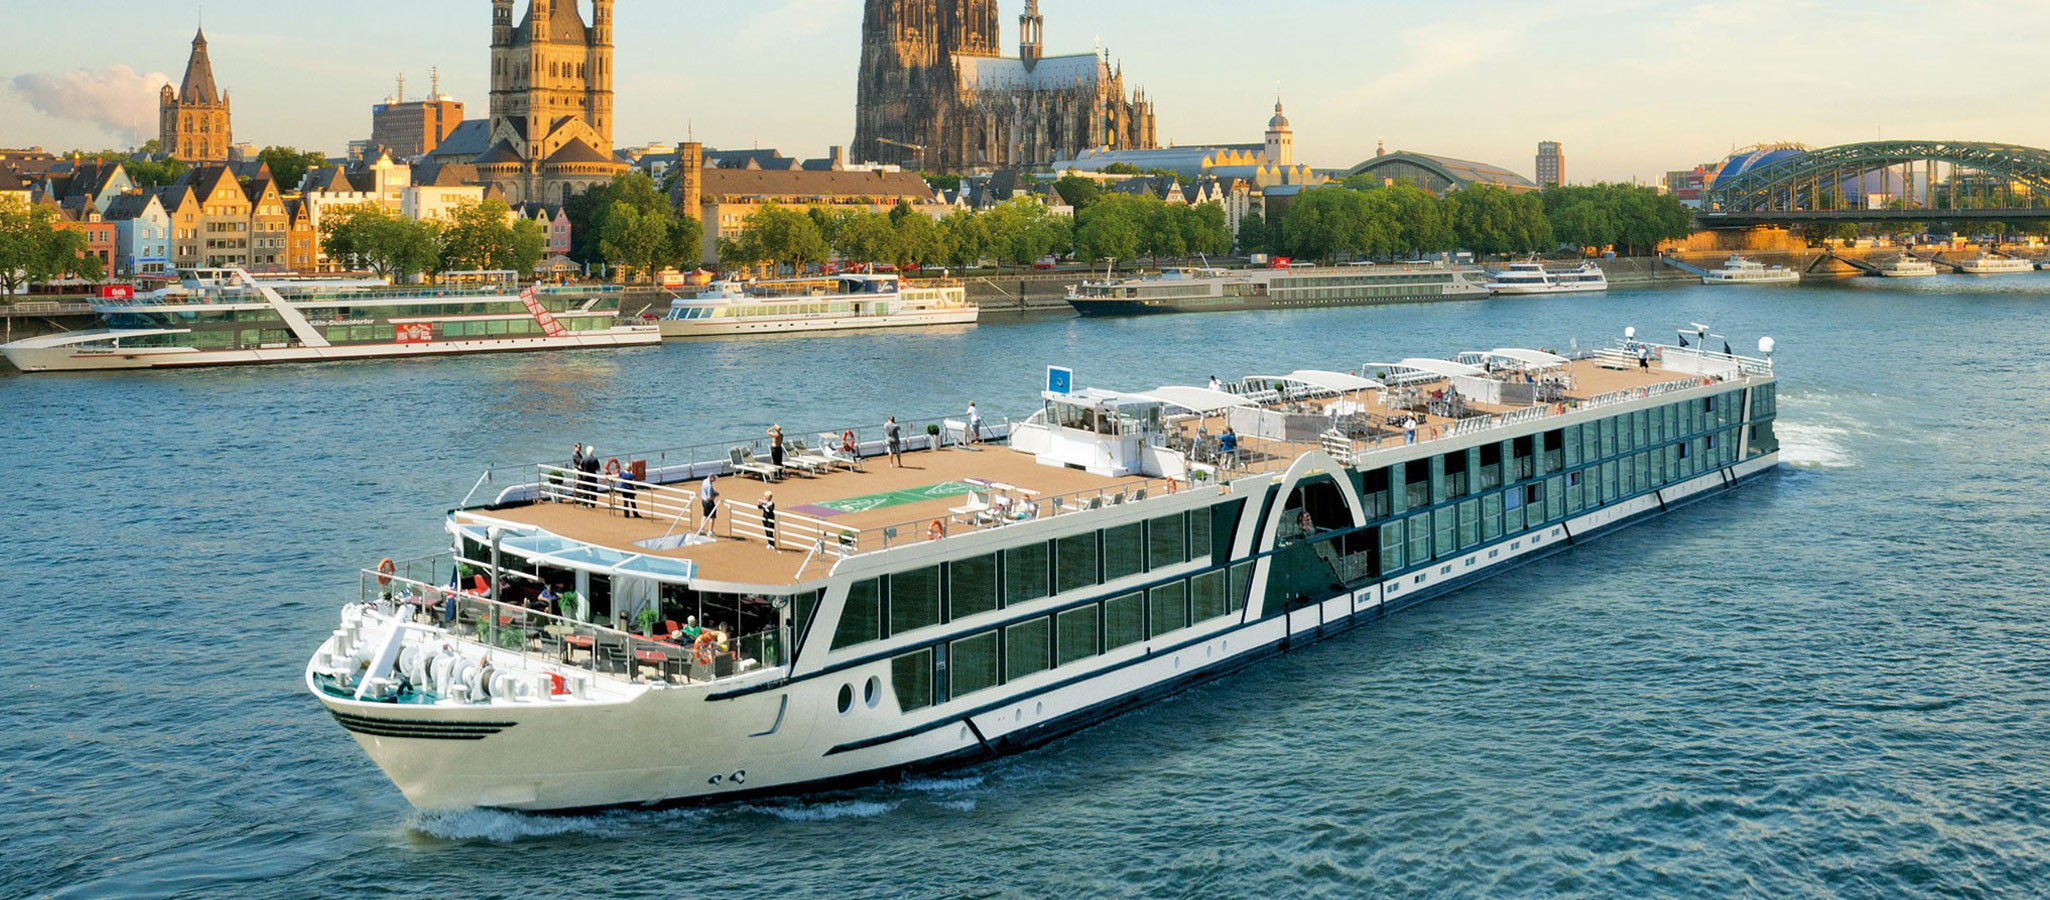 En route on Europe's beautiful rivers: Rhine, Danube, Seine and Rhône give scene for eventful incentive programs.